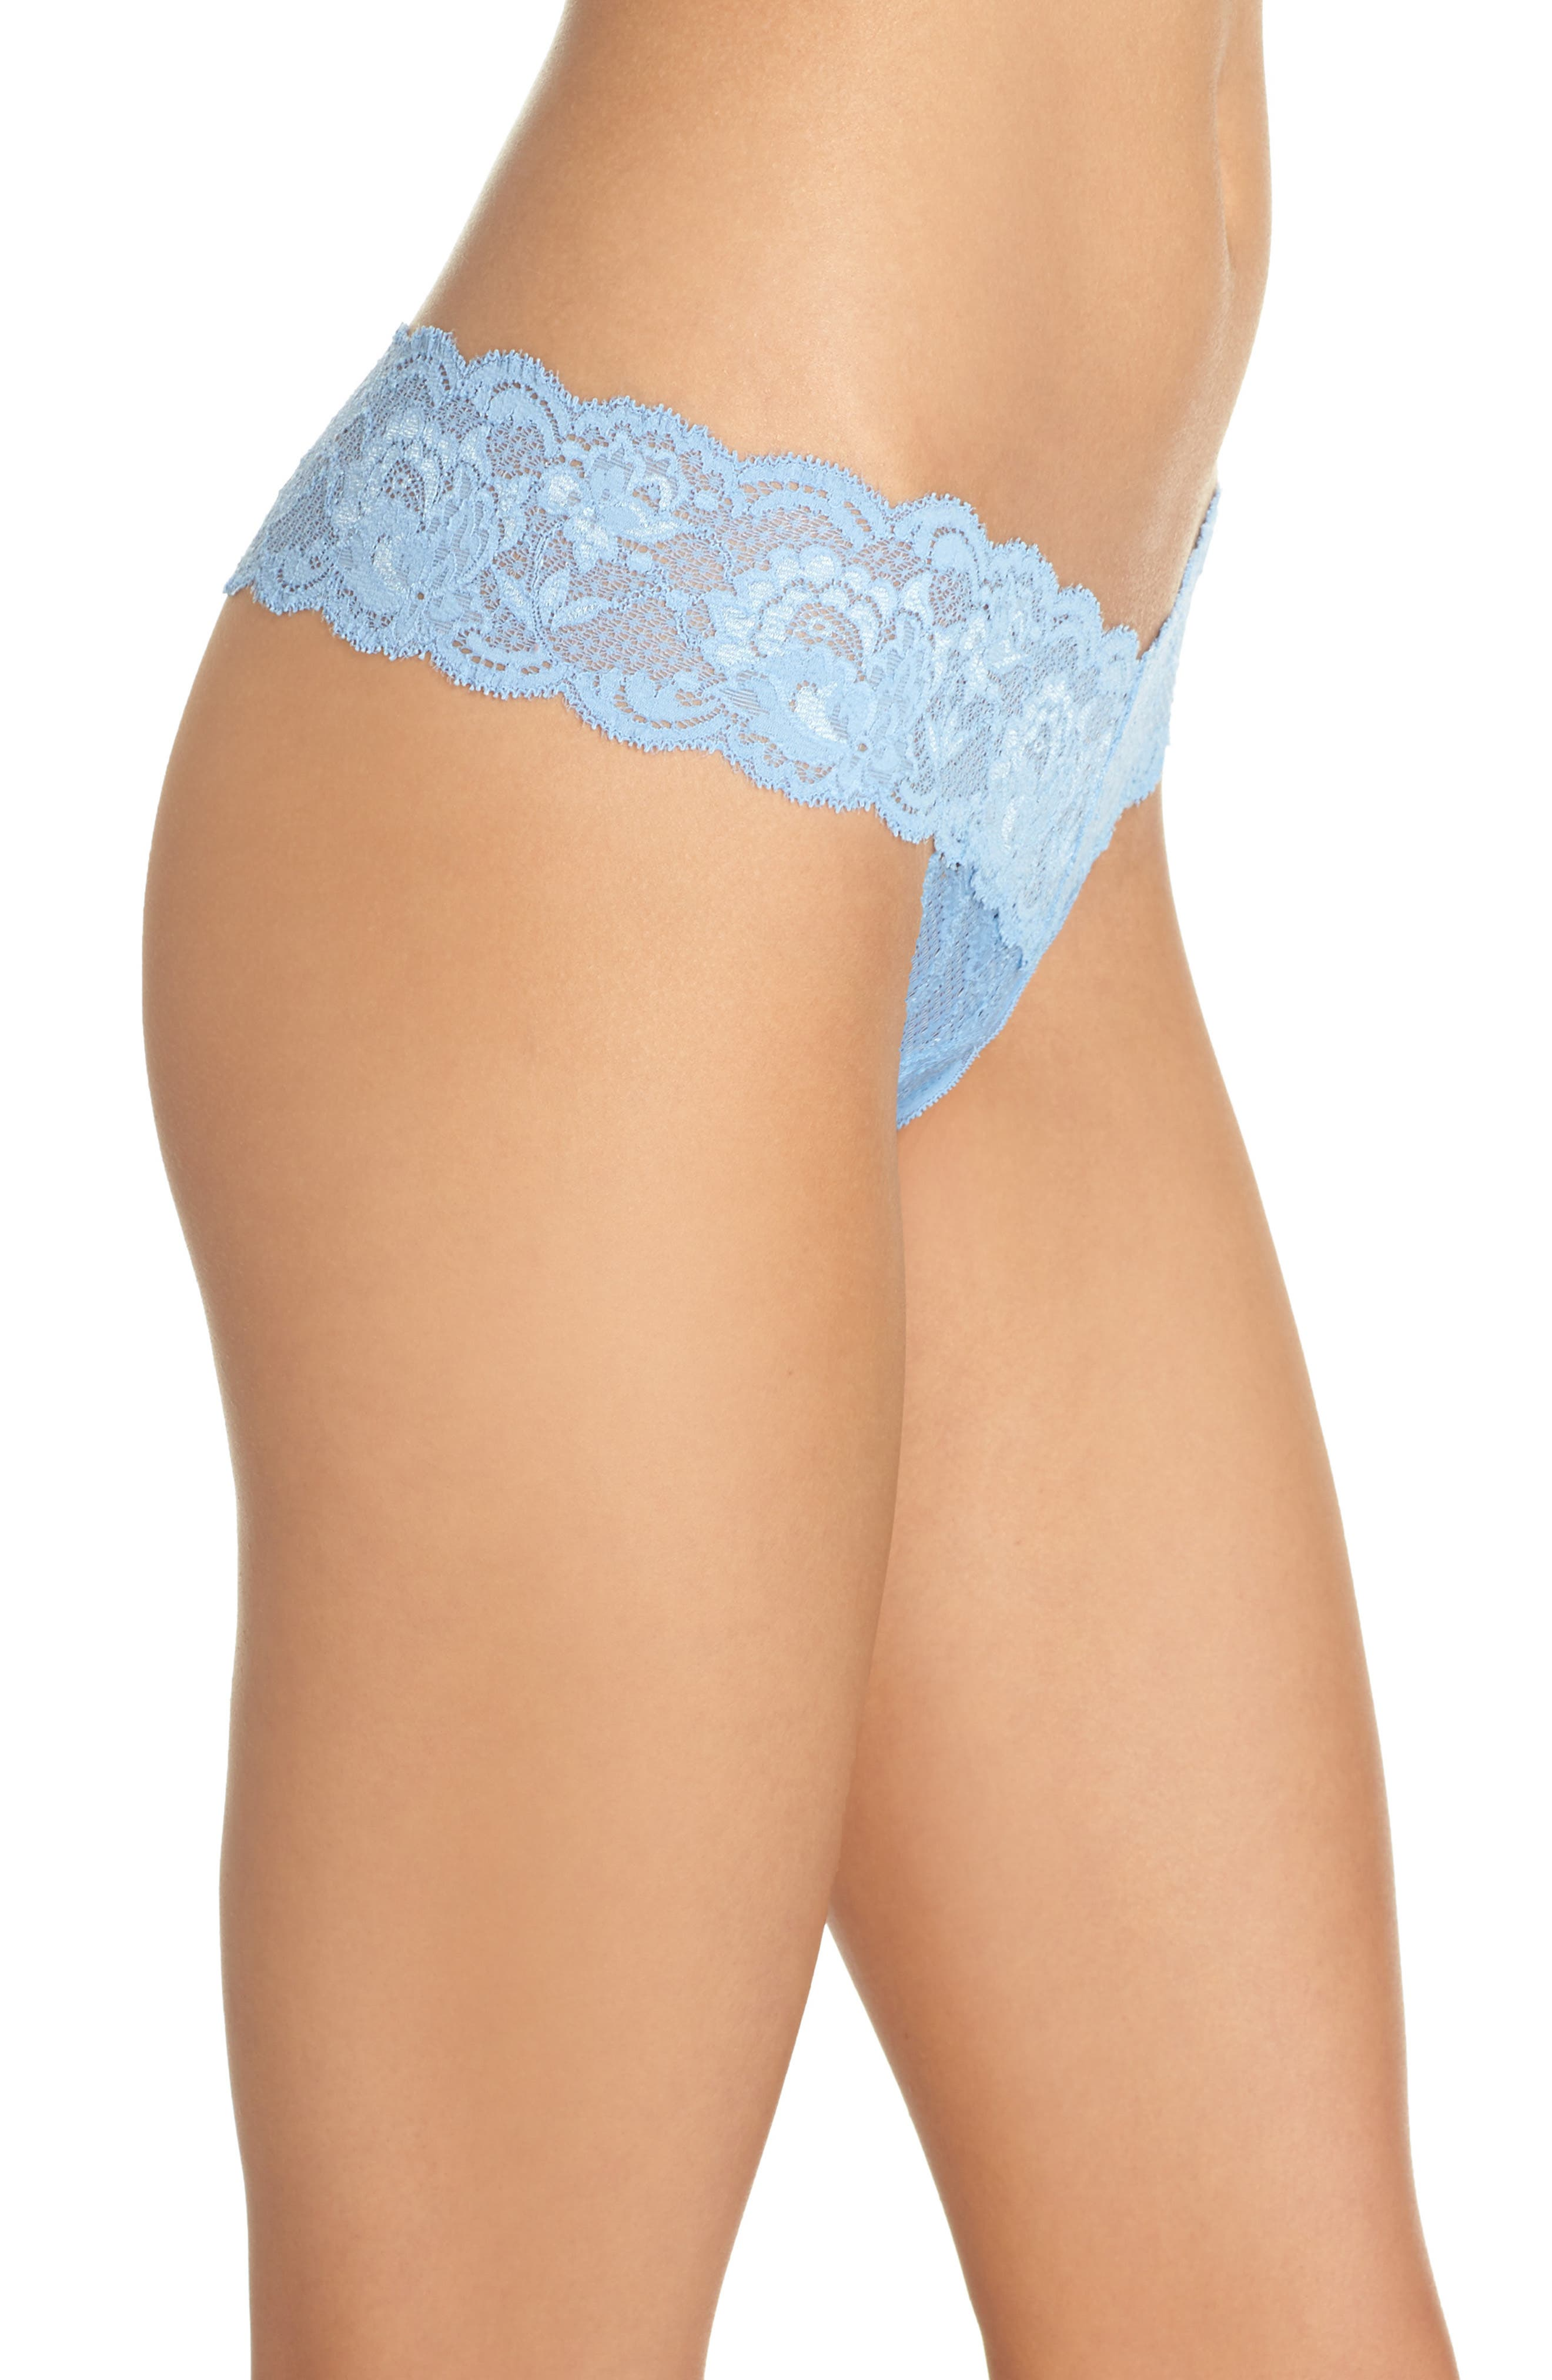 'Never Say Never Cutie' Thong,                             Alternate thumbnail 258, color,